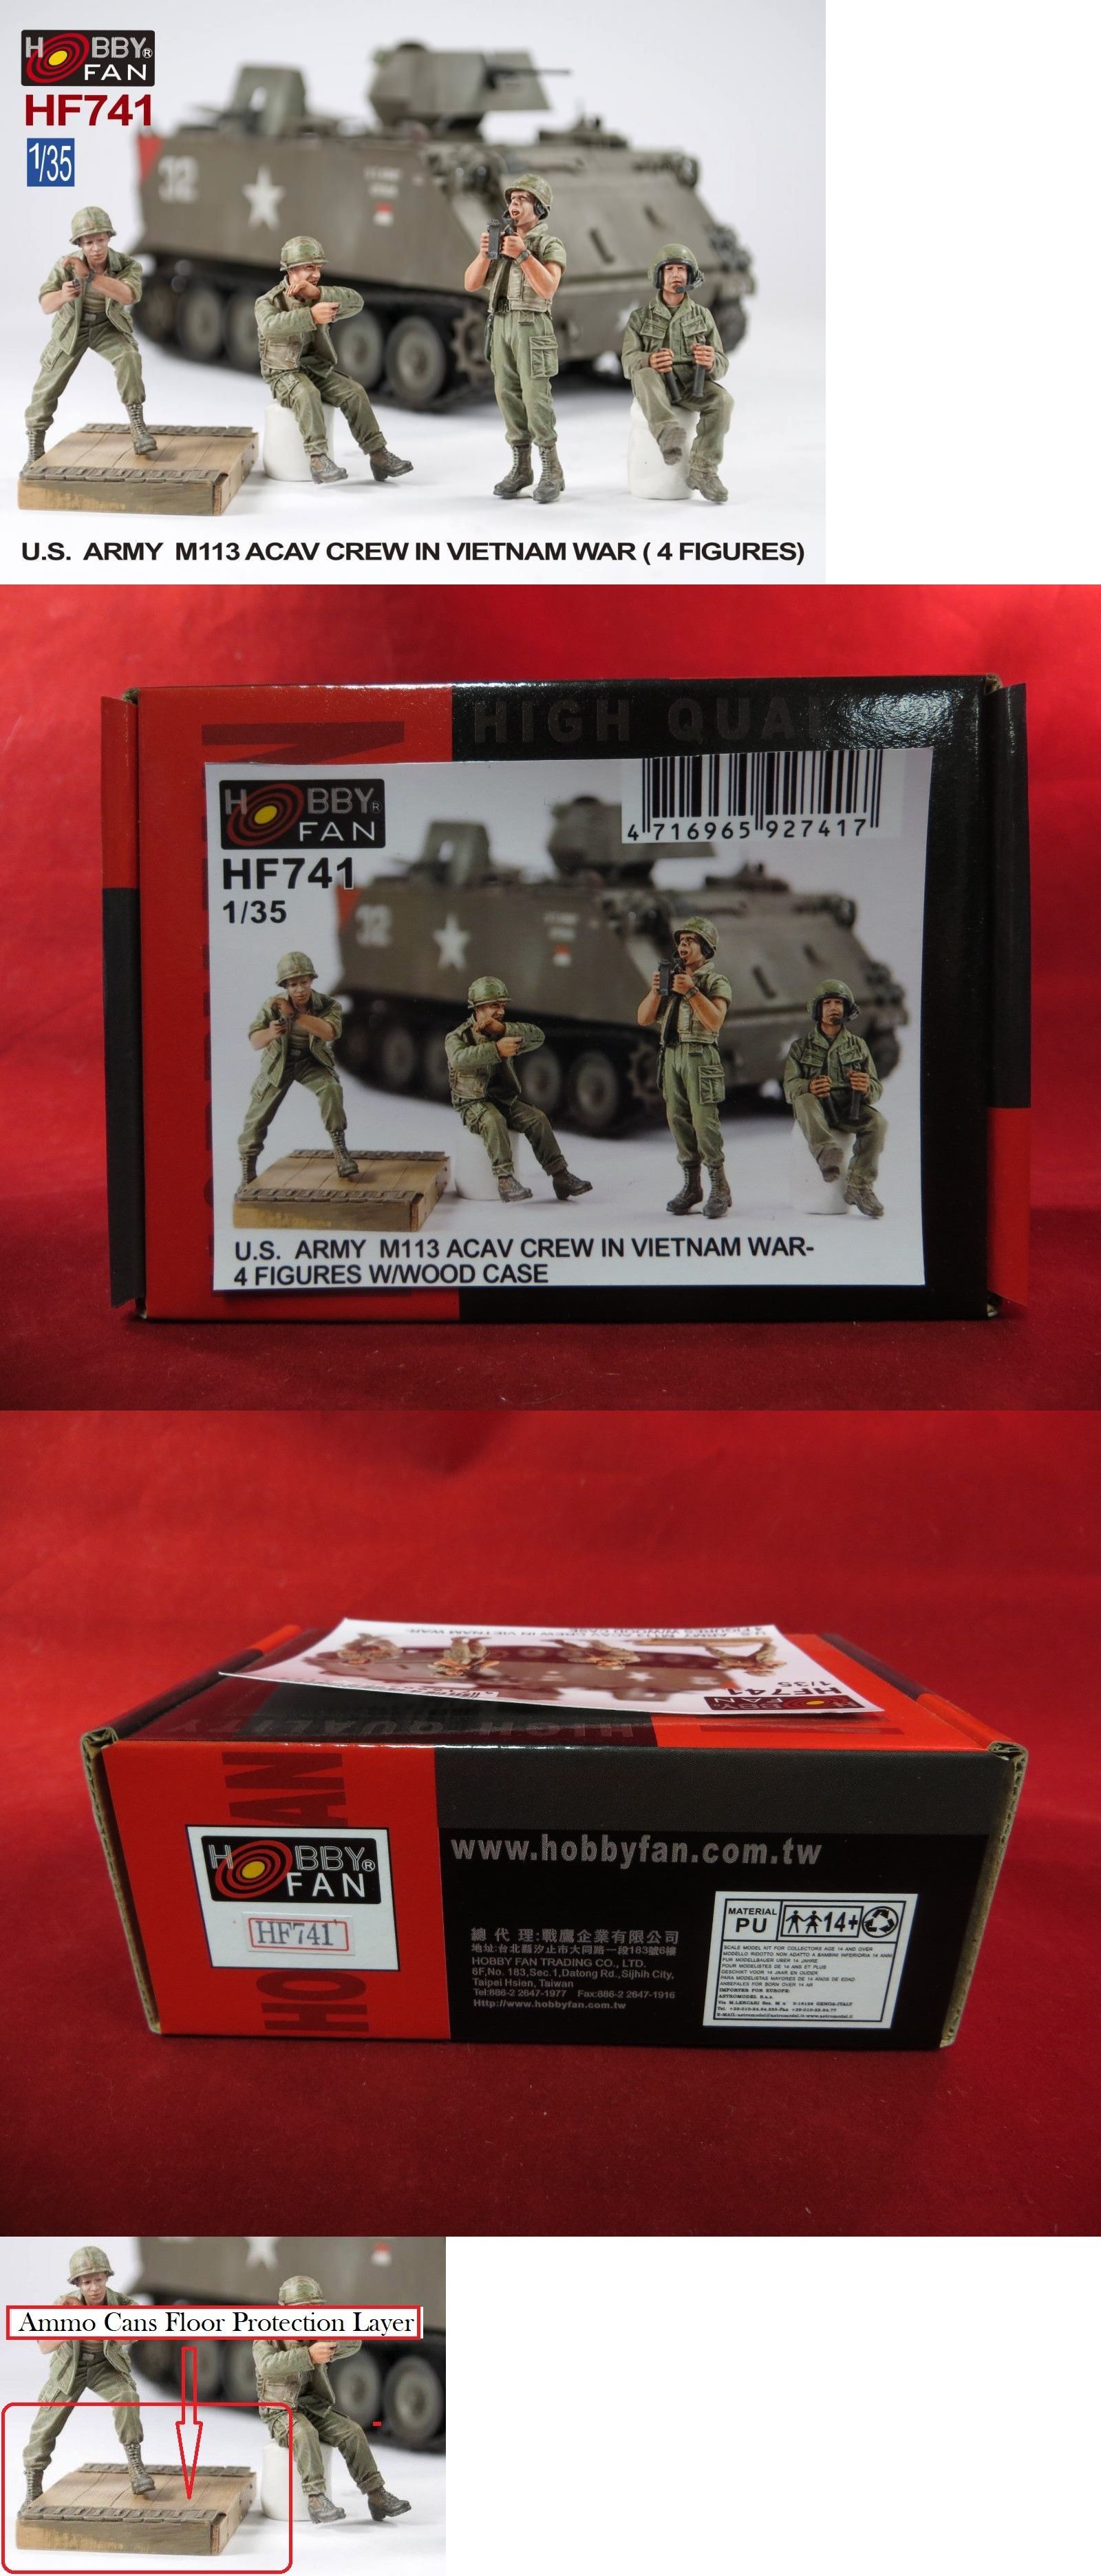 Military 2586: Afv Club Hobby Fan Hf741 1 35 Us M113 Acav Crew Vietnam W  Ammo Can Floor Layer -> BUY IT NOW ONLY: $45 on #eBay #military #hobby  #vietnam ...